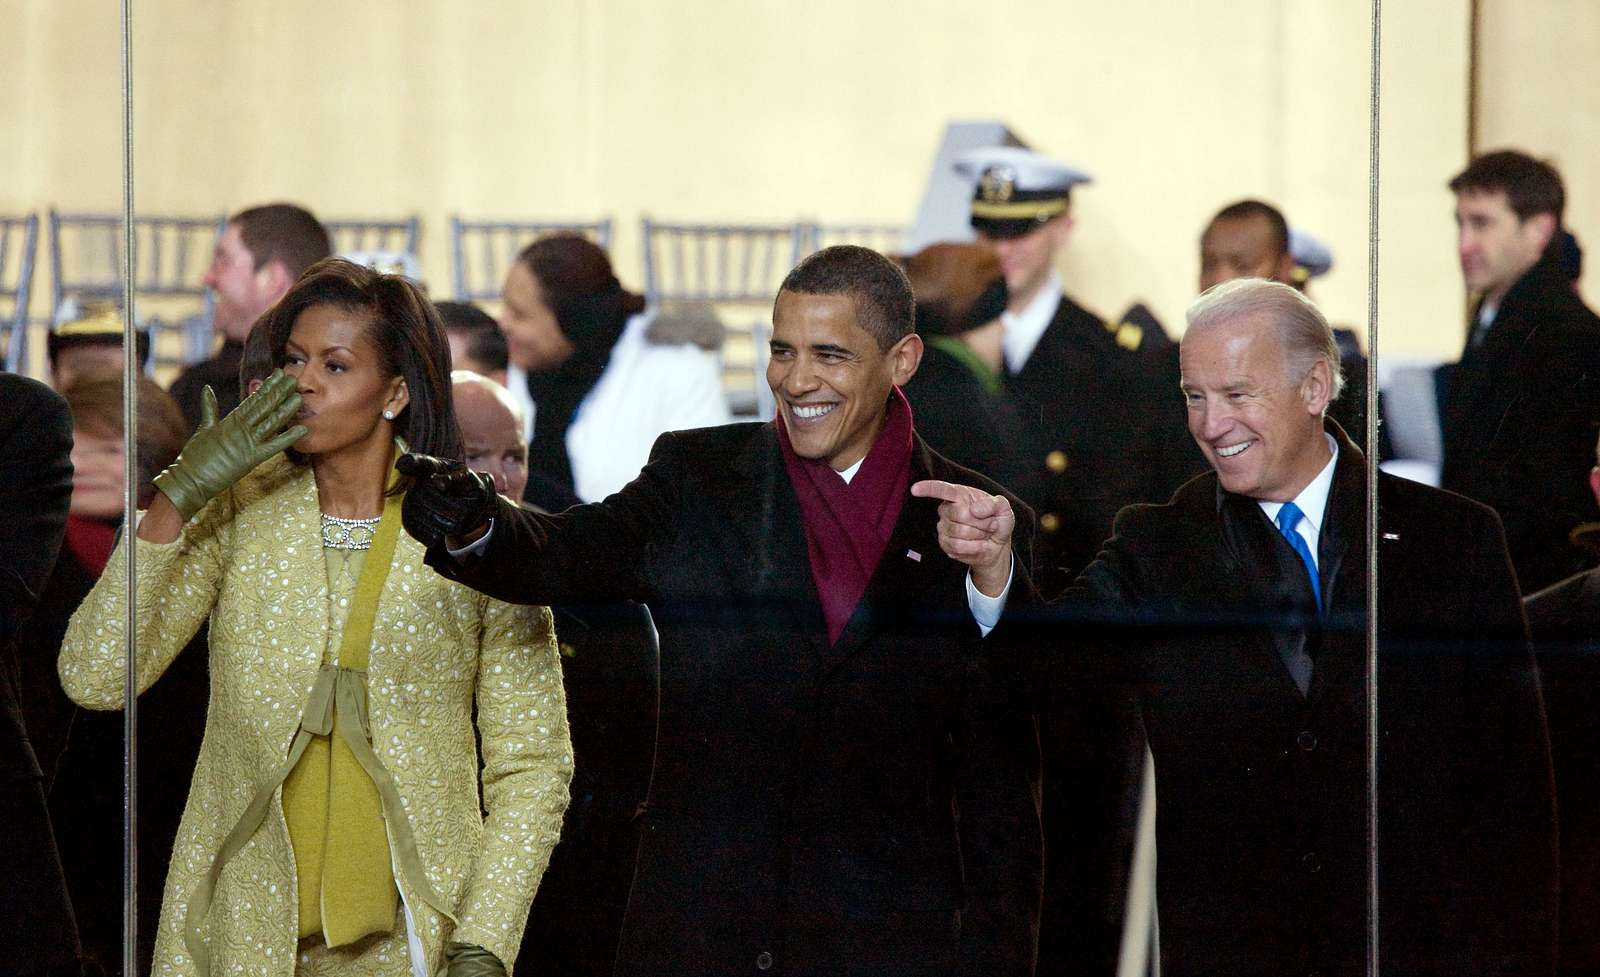 2009 Inaugural Parade. Michelle and Barack Obama join Joe Biden watch the parade from the viewing stand in front of the White House, Washington, D.C.